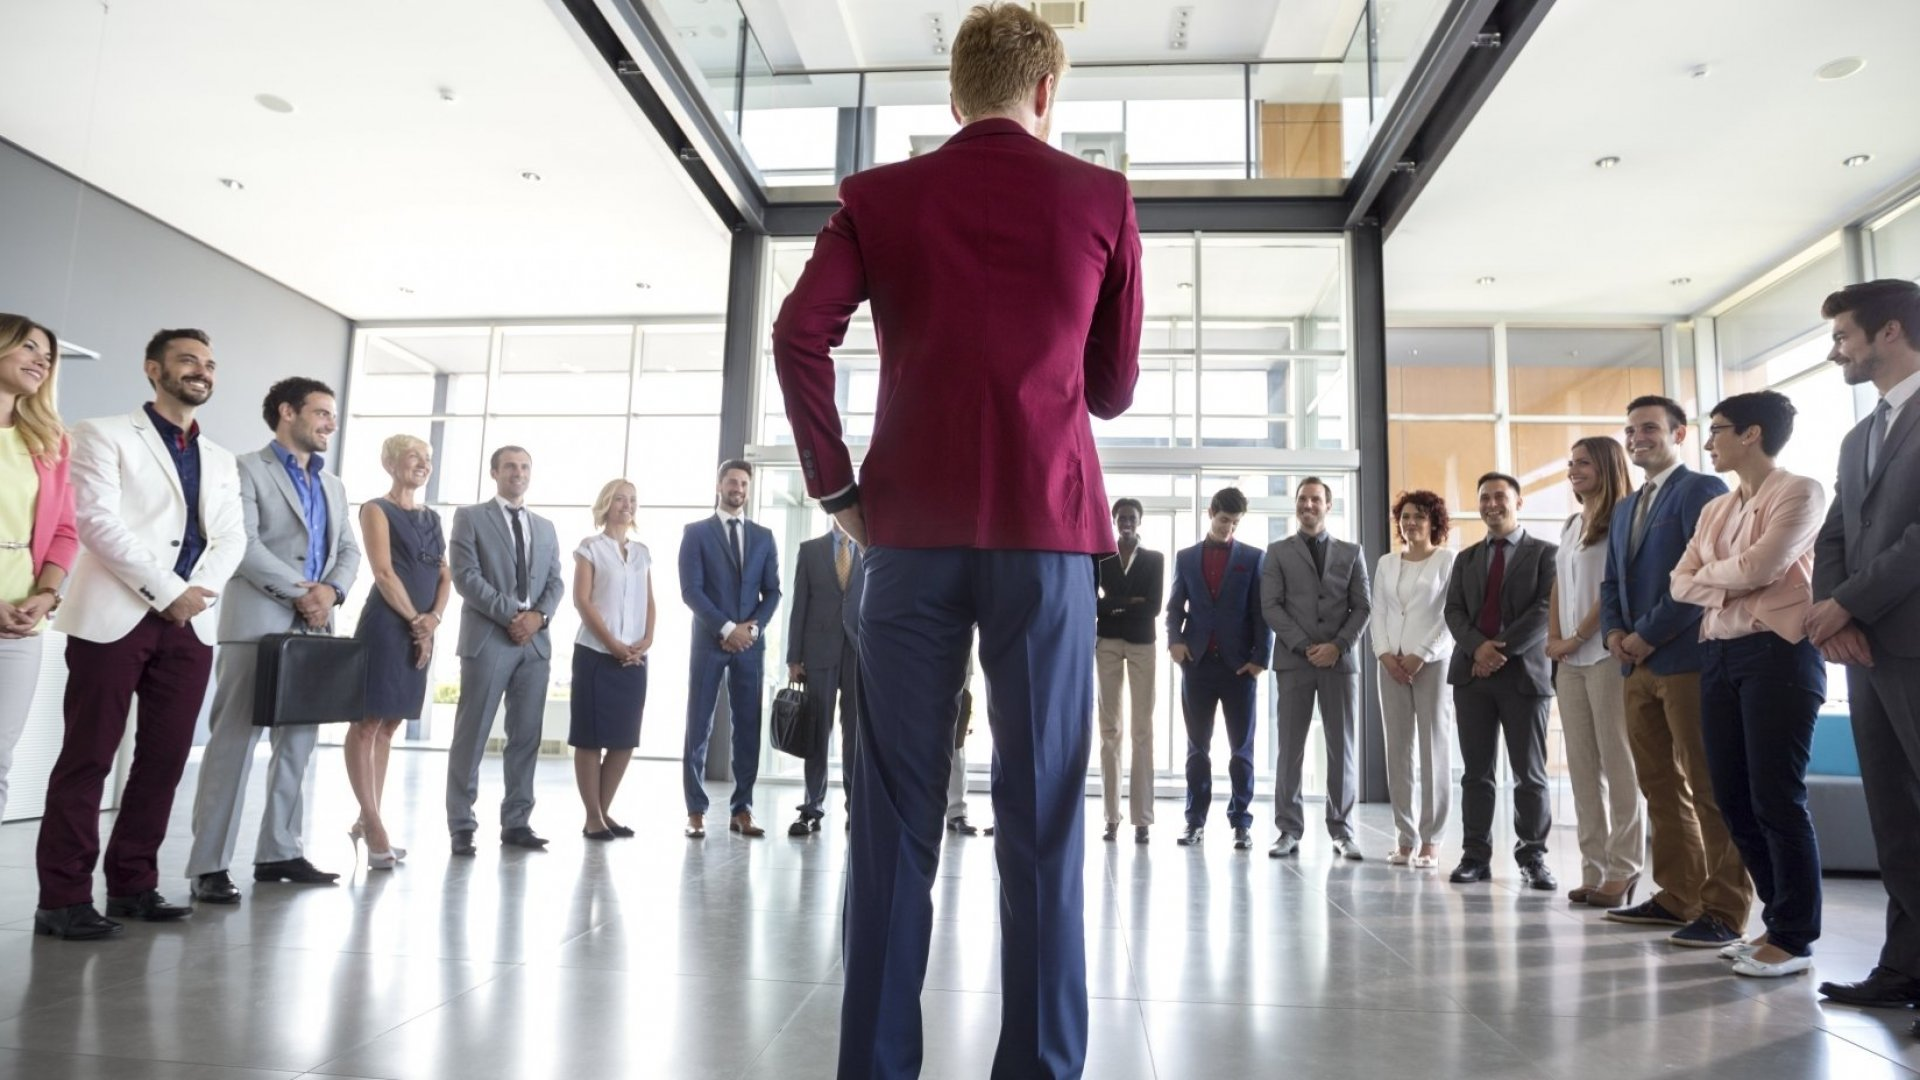 Maintaining Business Value When a Company Leader Leaves | Inc.com